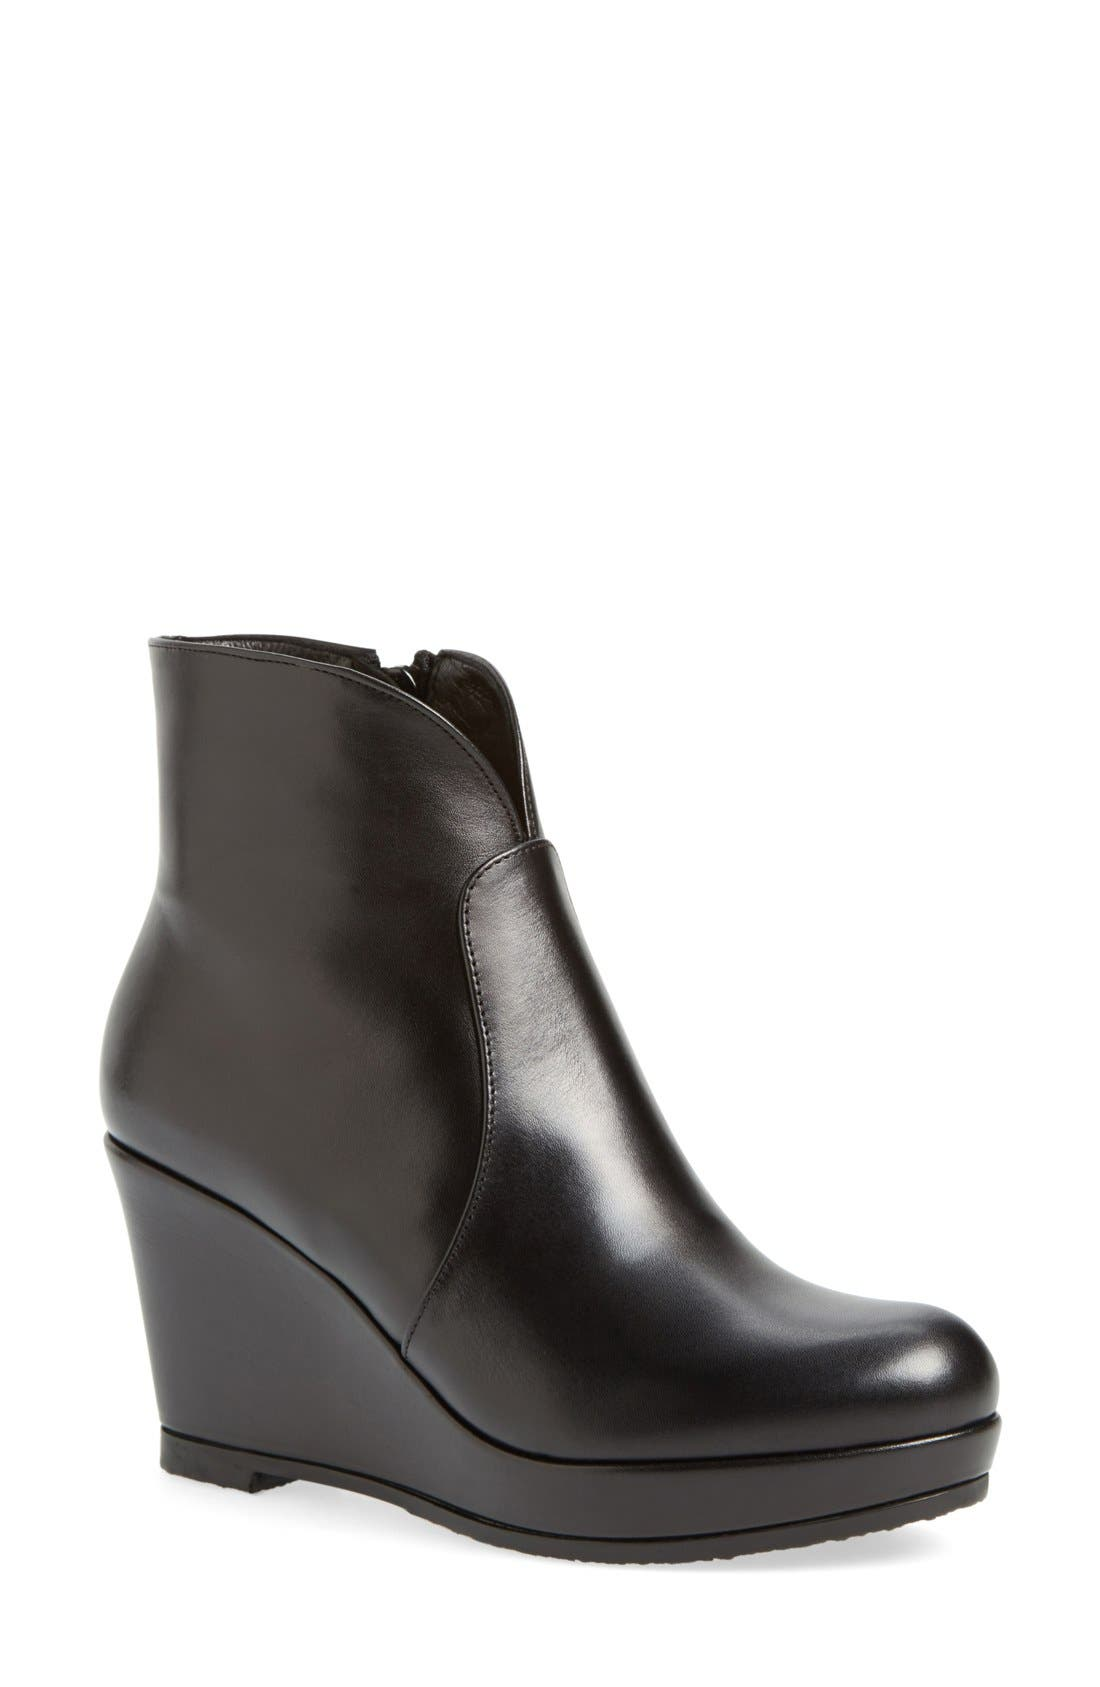 Alternate Image 1 Selected - Cordani 'Laraby' Wedge Bootie